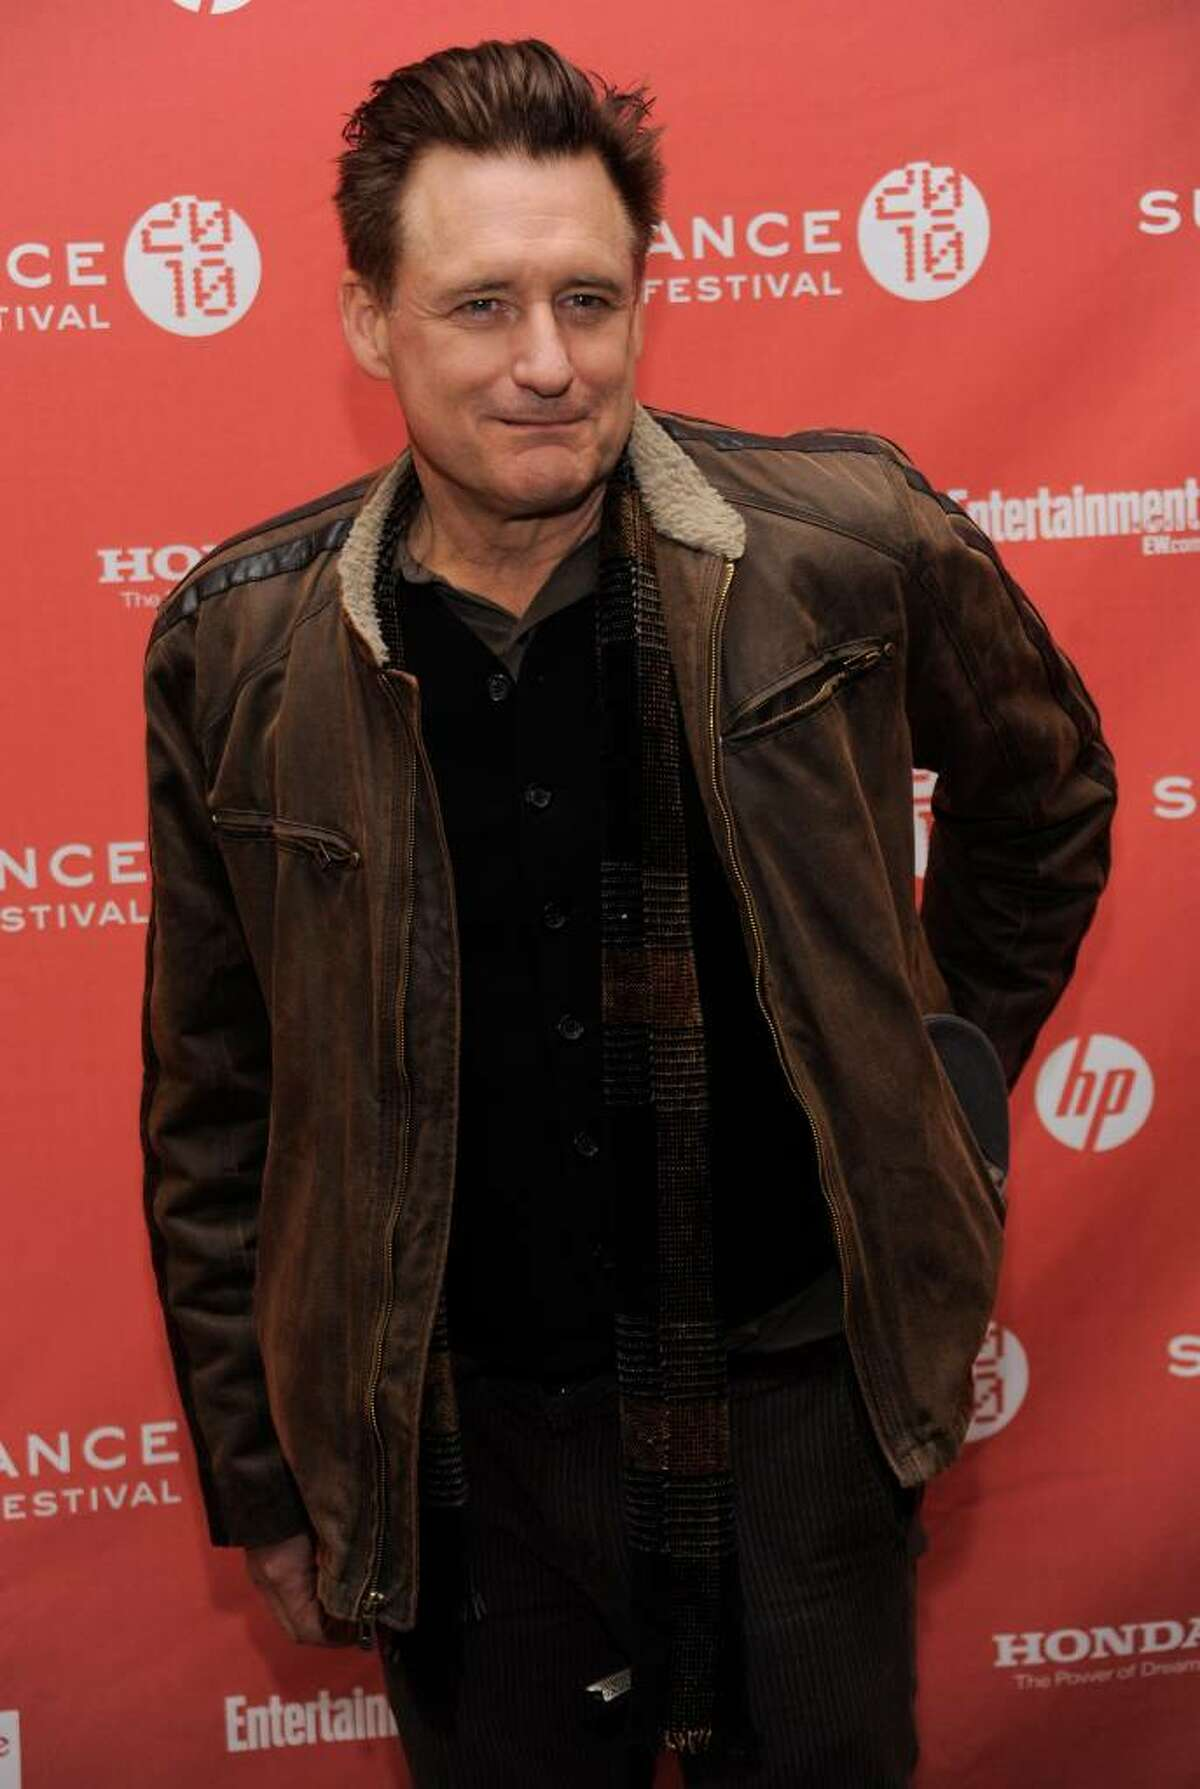 """Bill Pullman, a cast member in """"The Killer Inside Me,"""" arrives at the premiere of the film at the Sundance Film Festival in Park City, Utah, Sunday, Jan. 24, 2010. (AP Photo/Chris Pizzello)"""